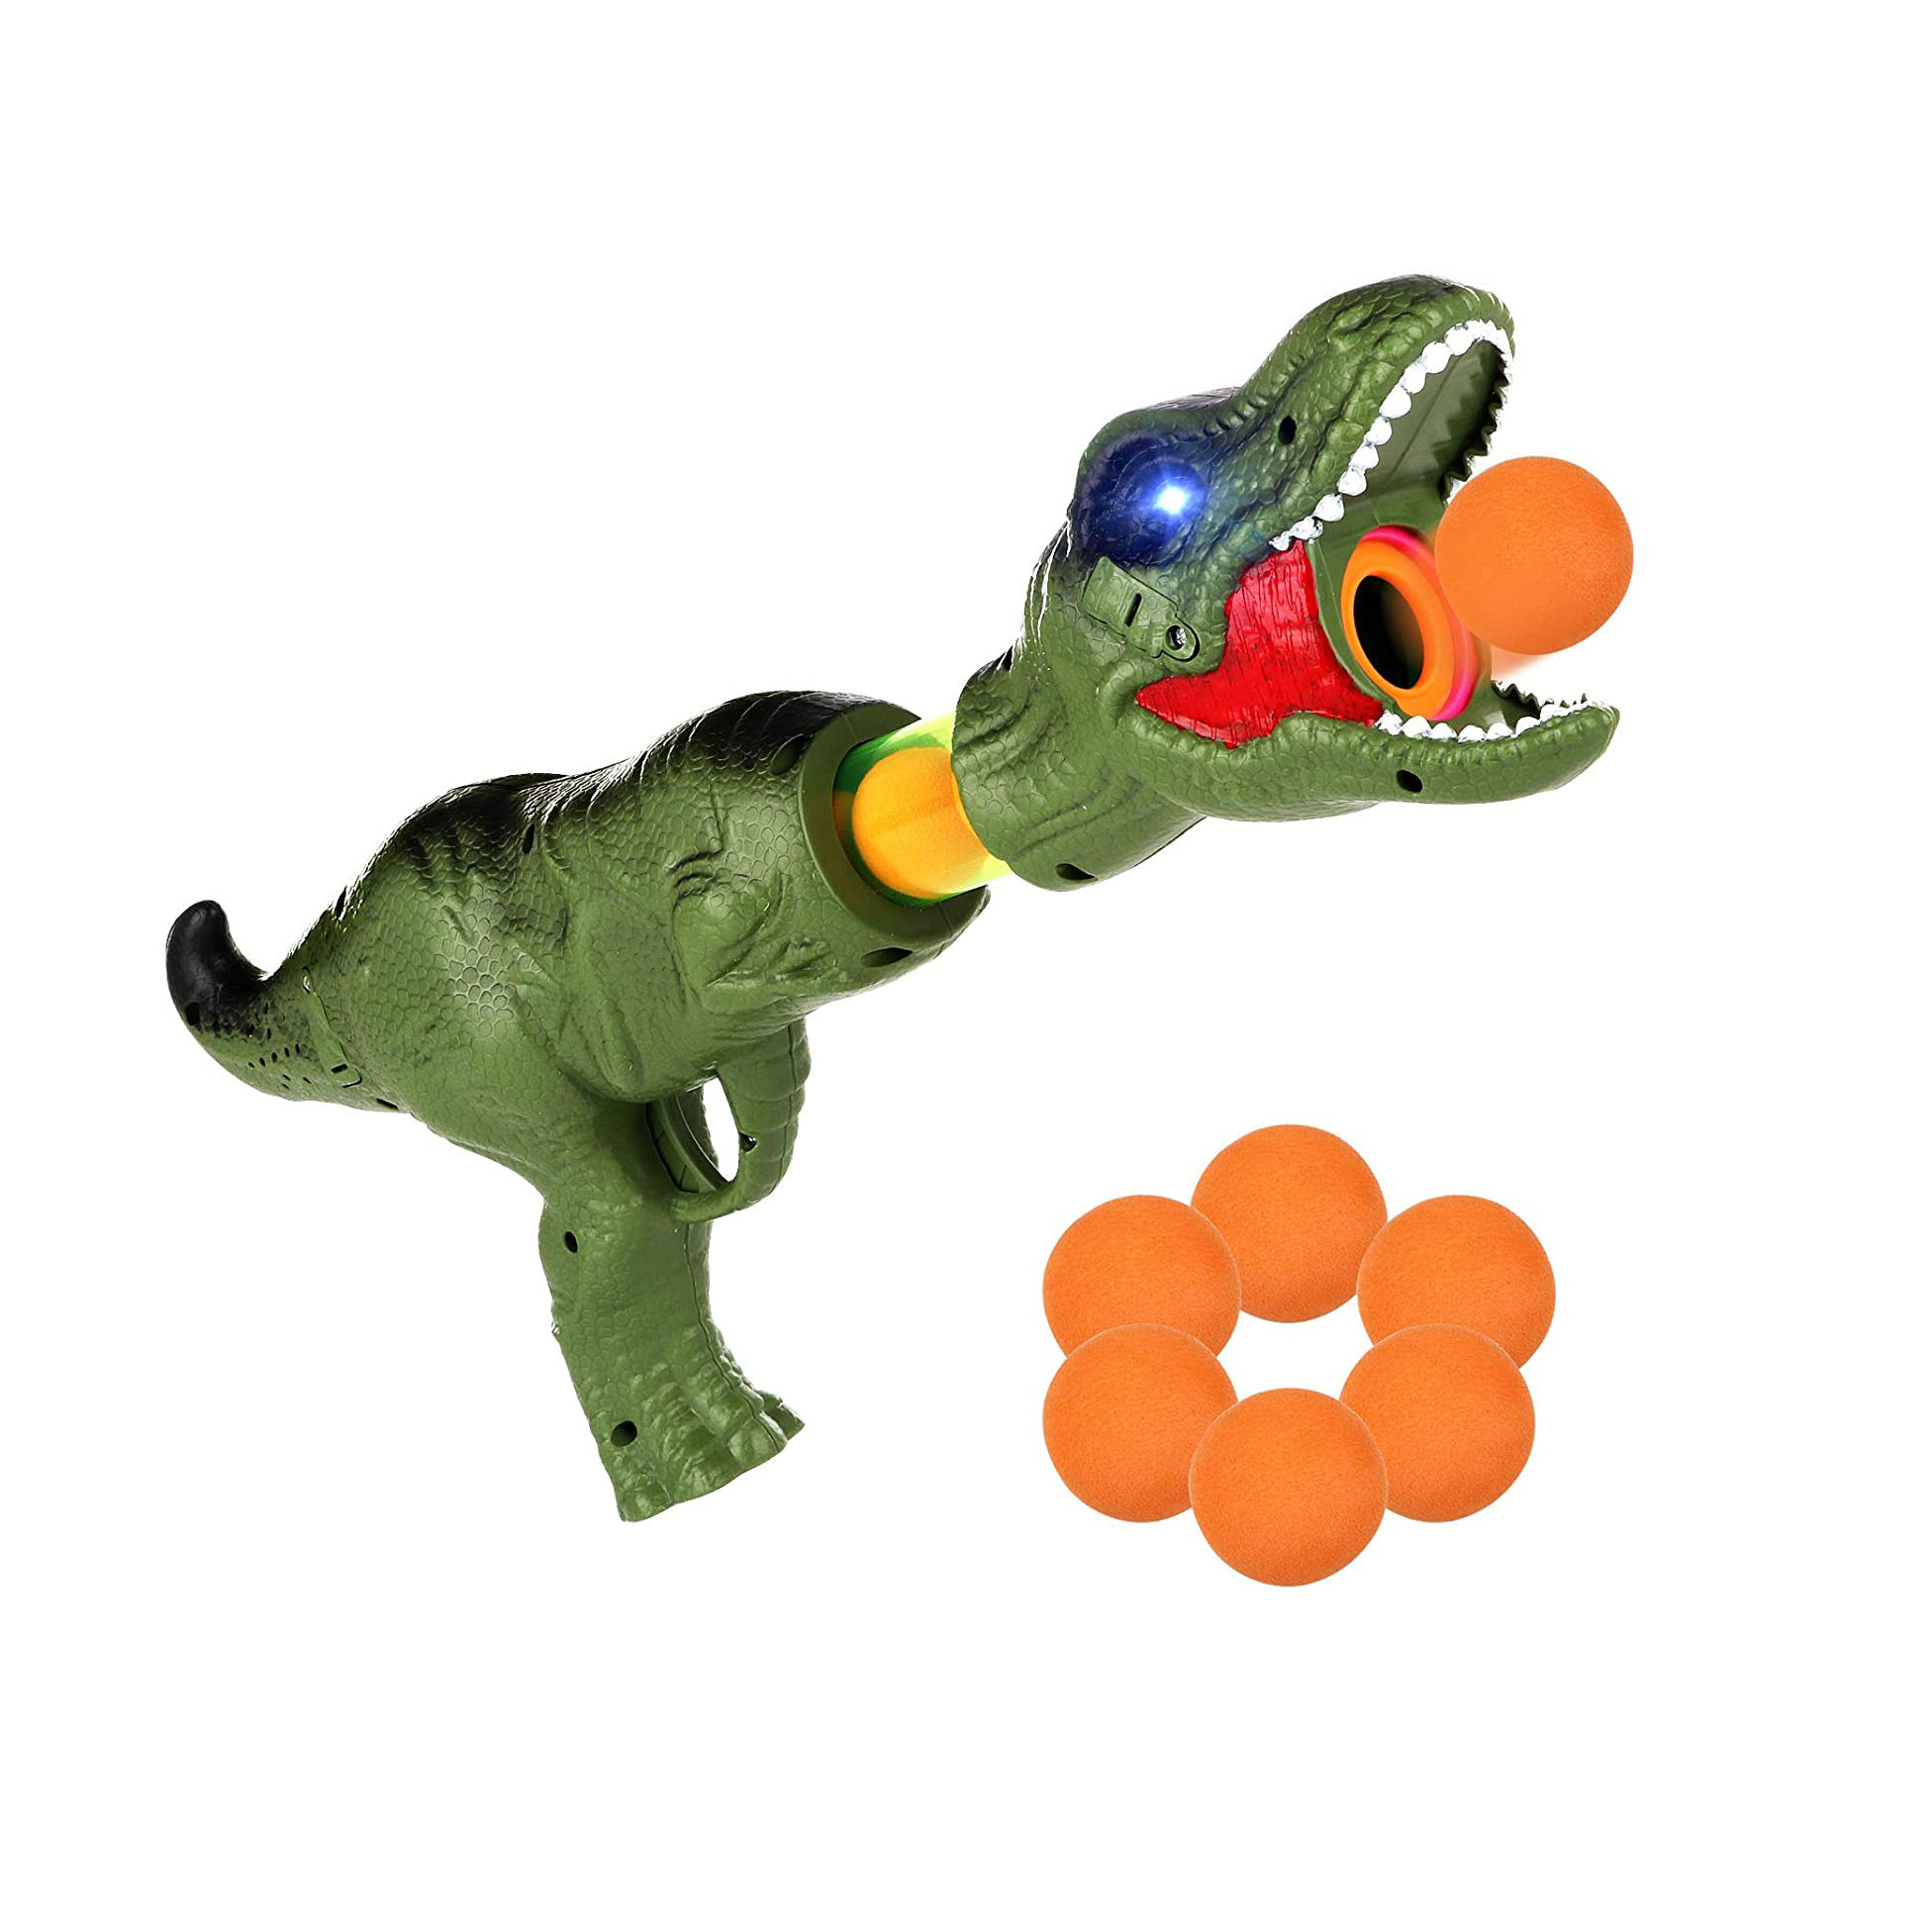 Air Powered Shooter Power Popper Gun Role Playing Great Toy Indoor or Outdoor with Lighting and Roaring Fire Blaster for Kids